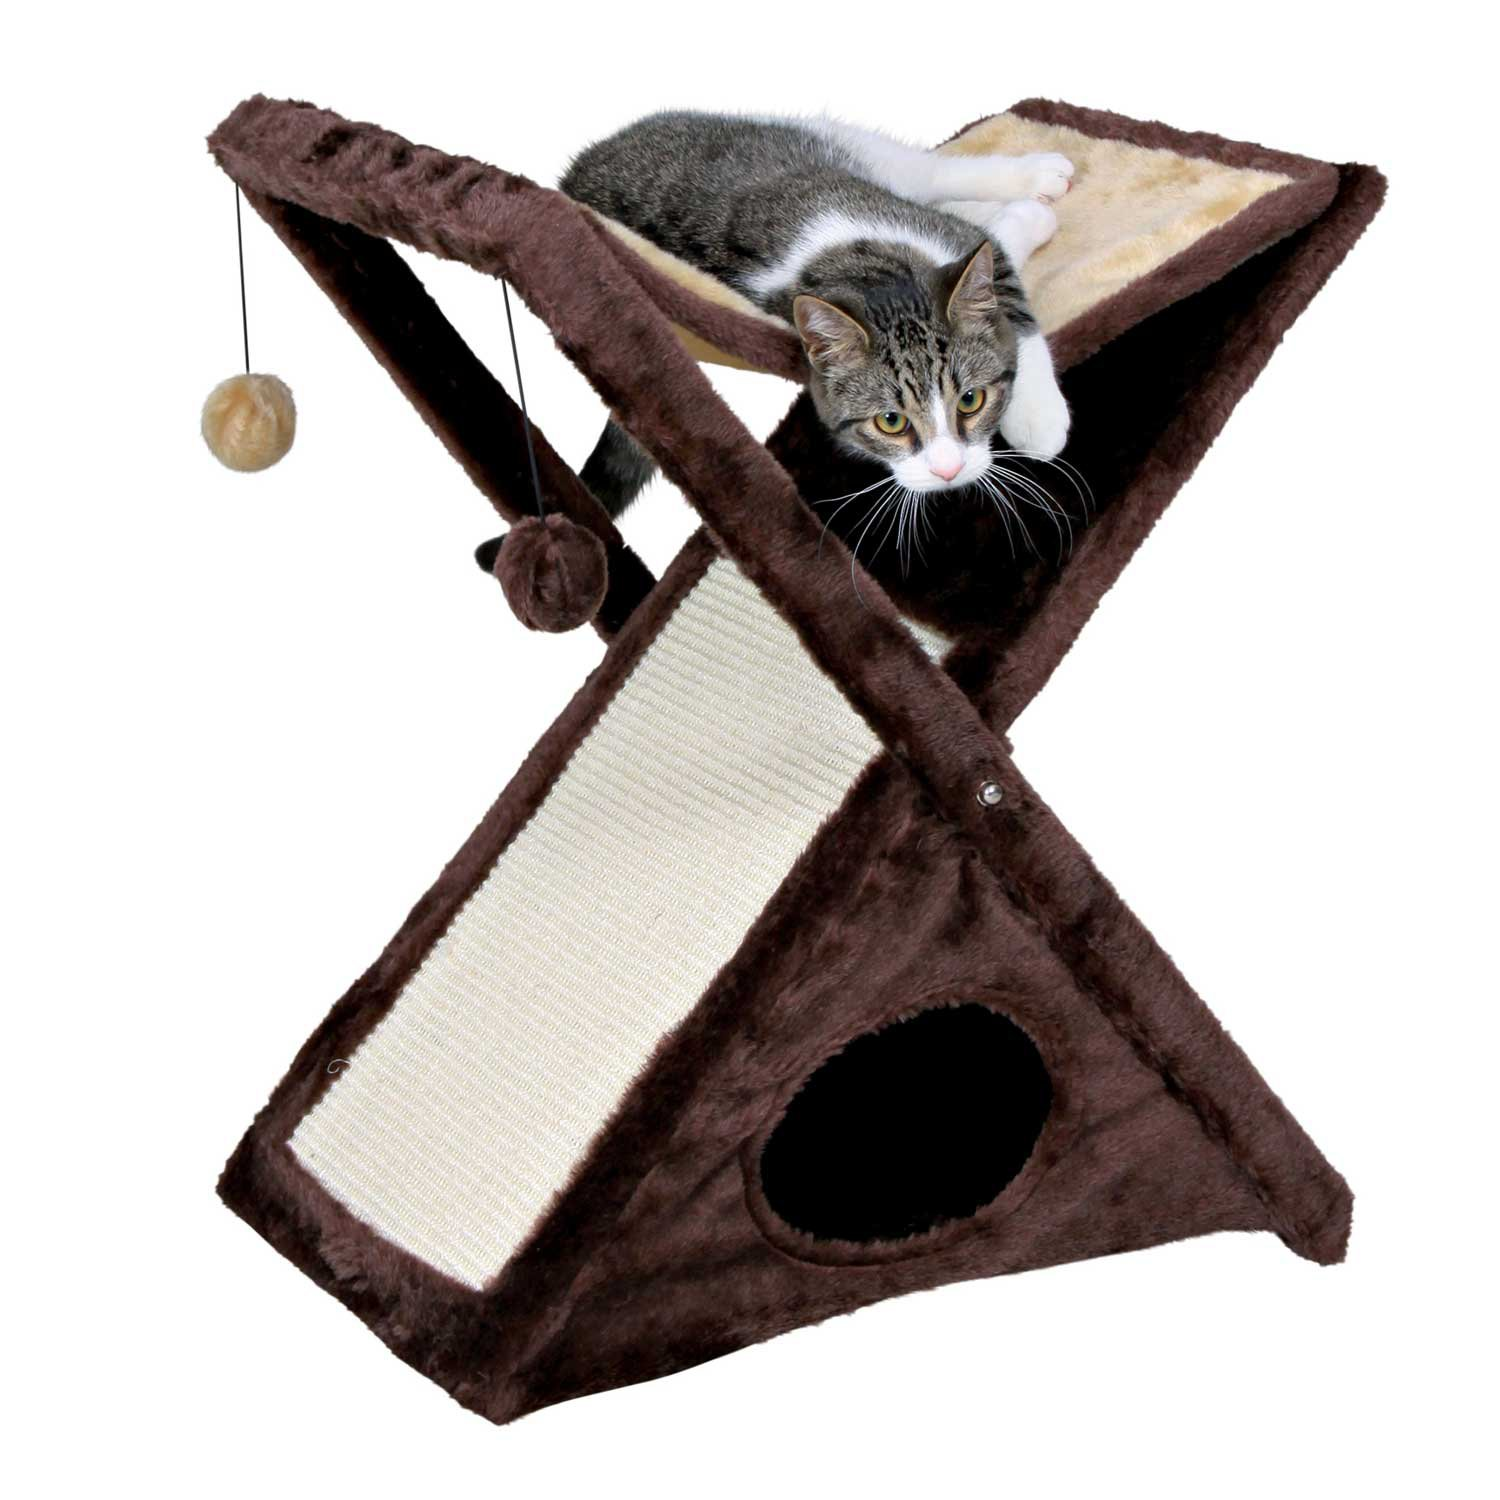 Trixie Miguel Cat Scratching Tower in Beige & Brown | Petco | Tuggl